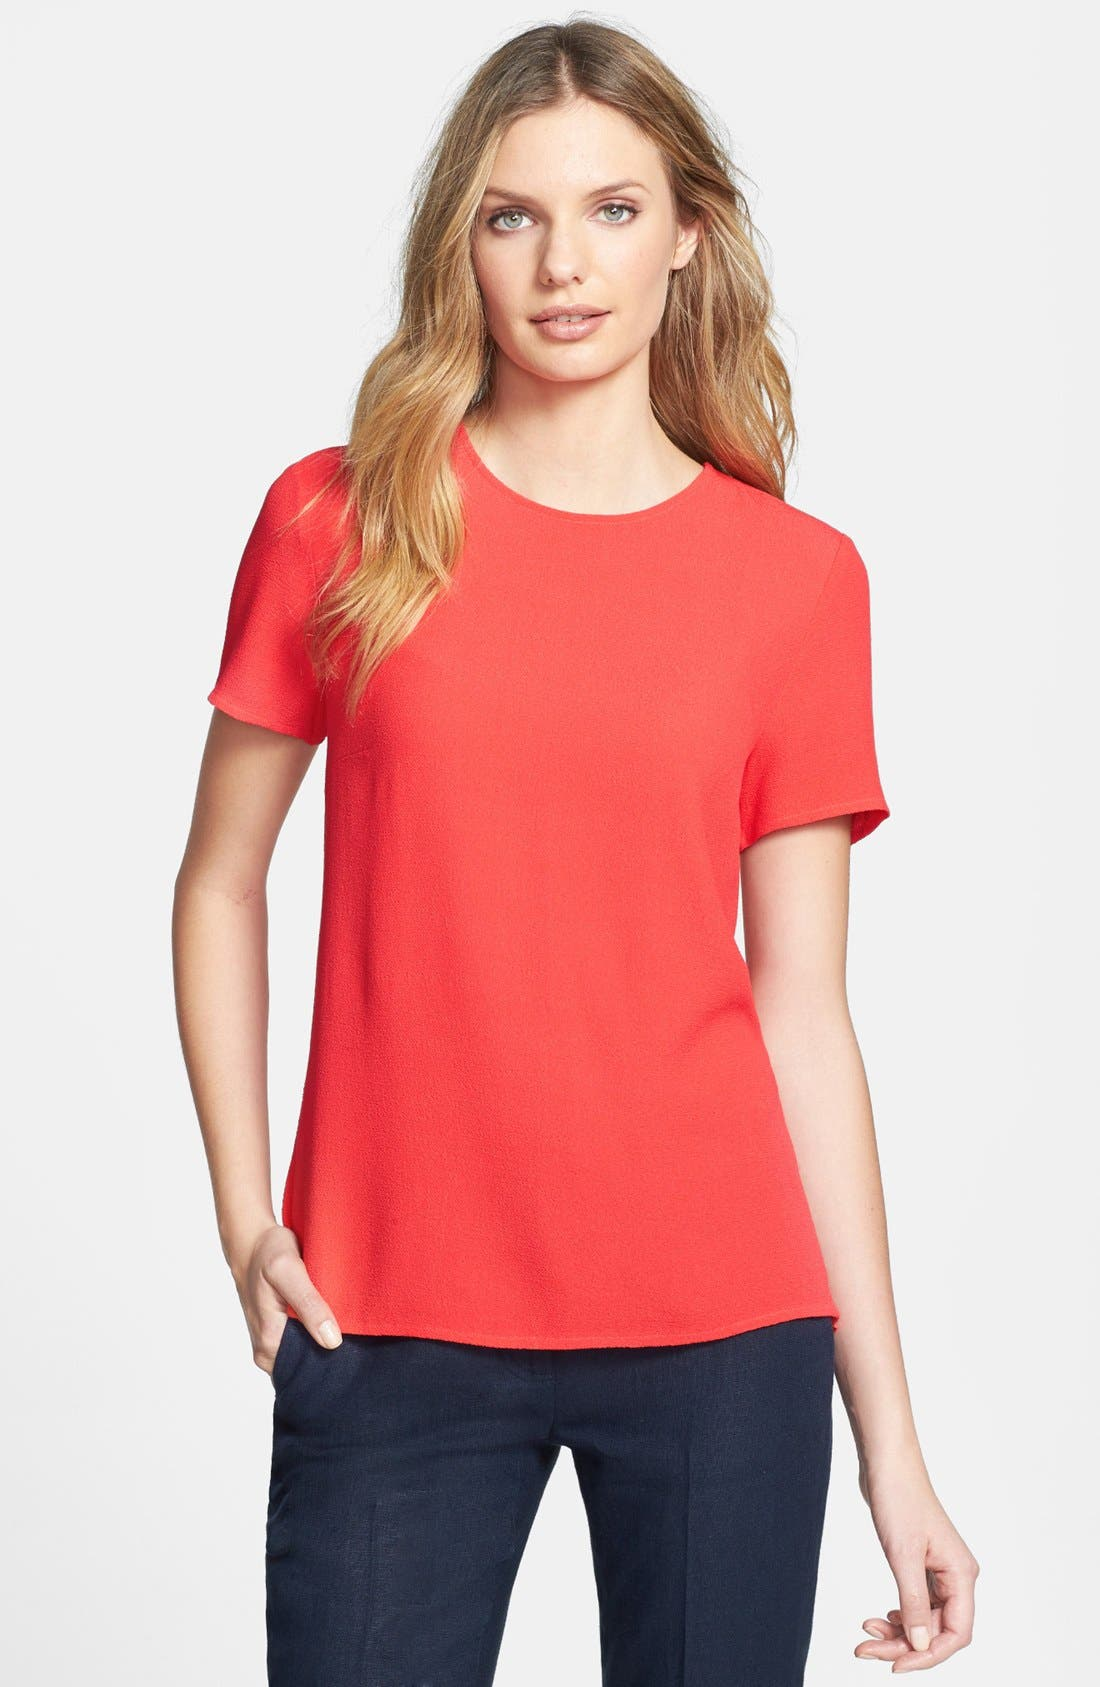 Alternate Image 1 Selected - MICHAEL Michael Kors Crewneck Peplum Back Top